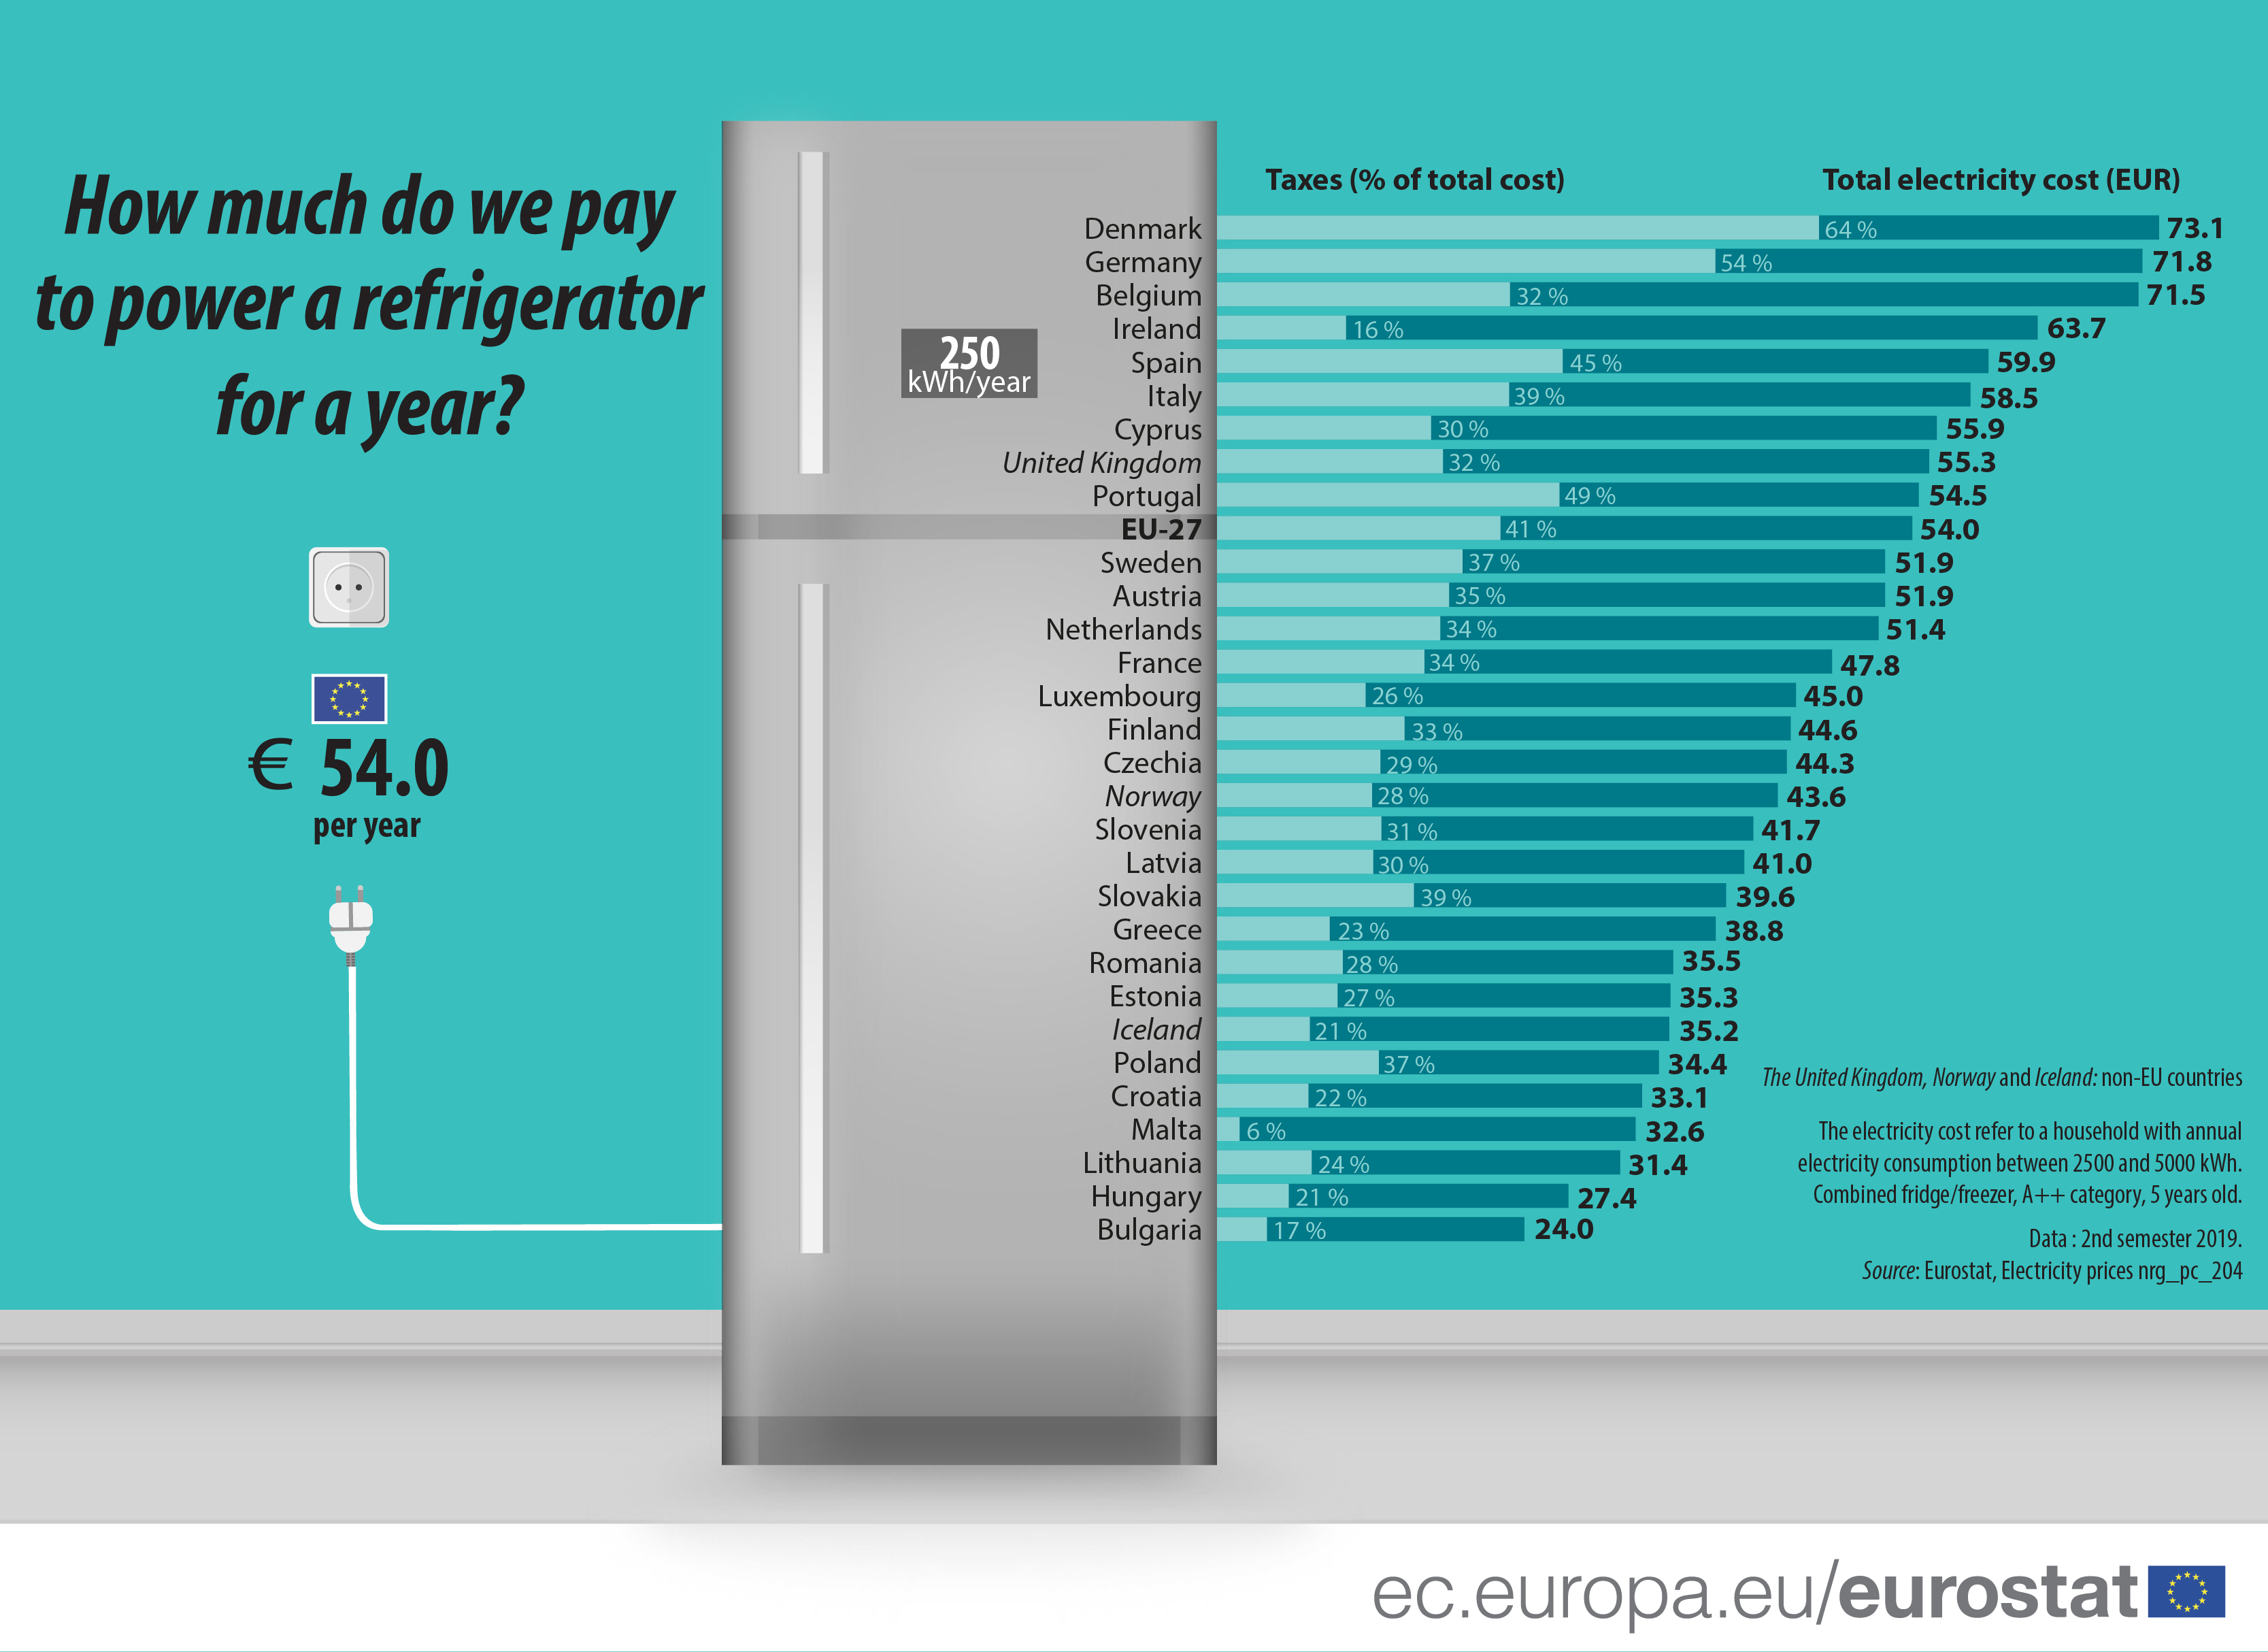 Infographic: How do we pay to power a refrigerator for a year?